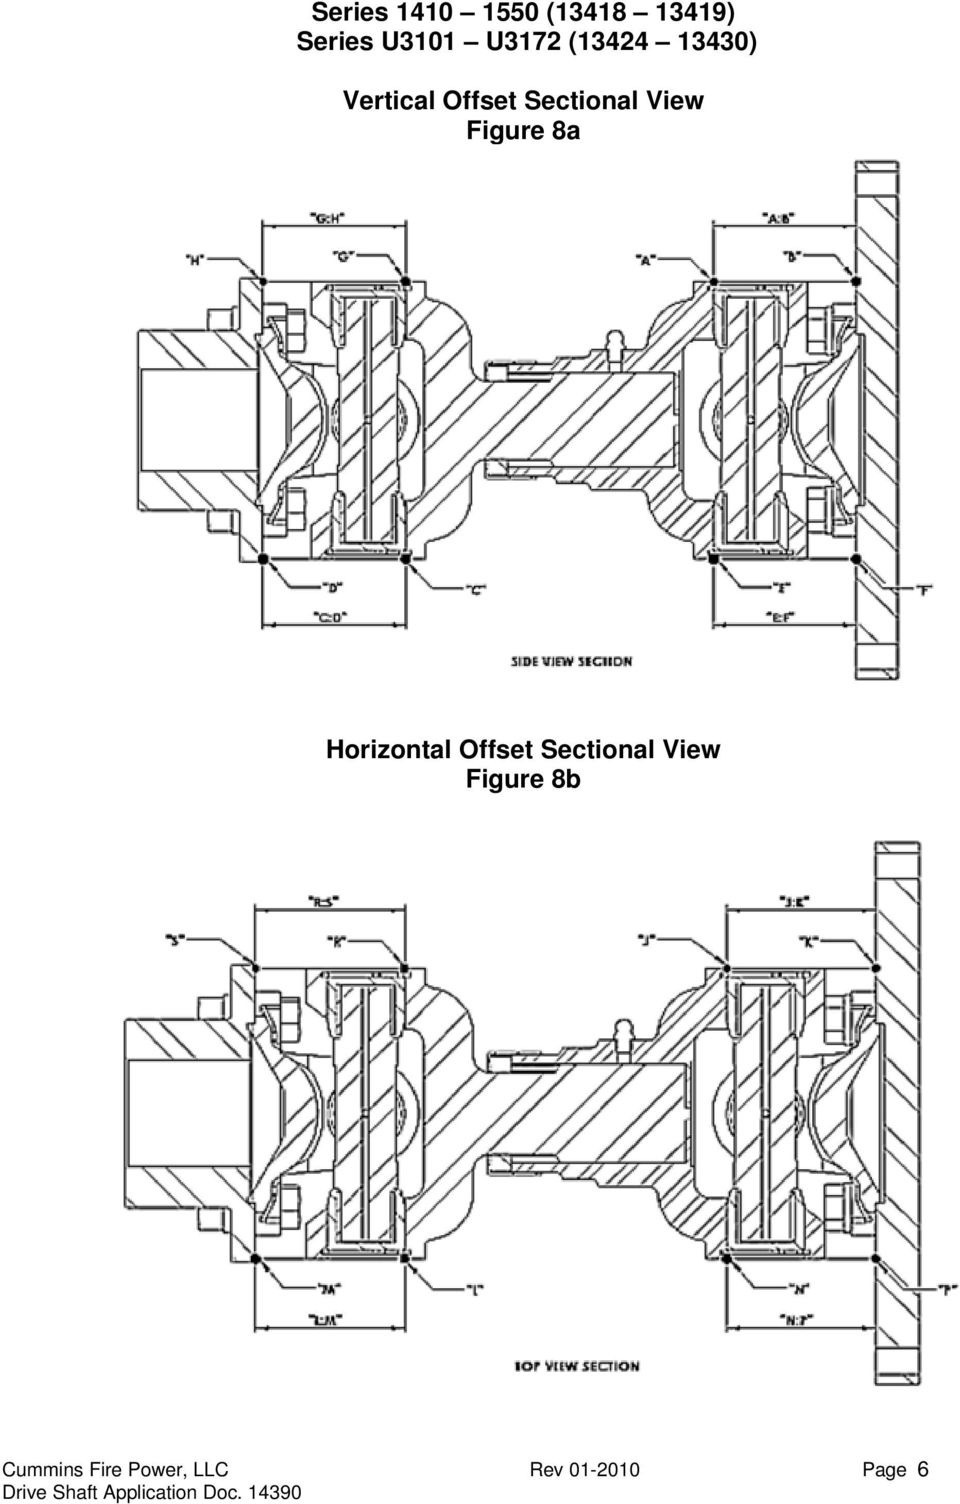 View Figure 8a Horizontal Offset Sectional View